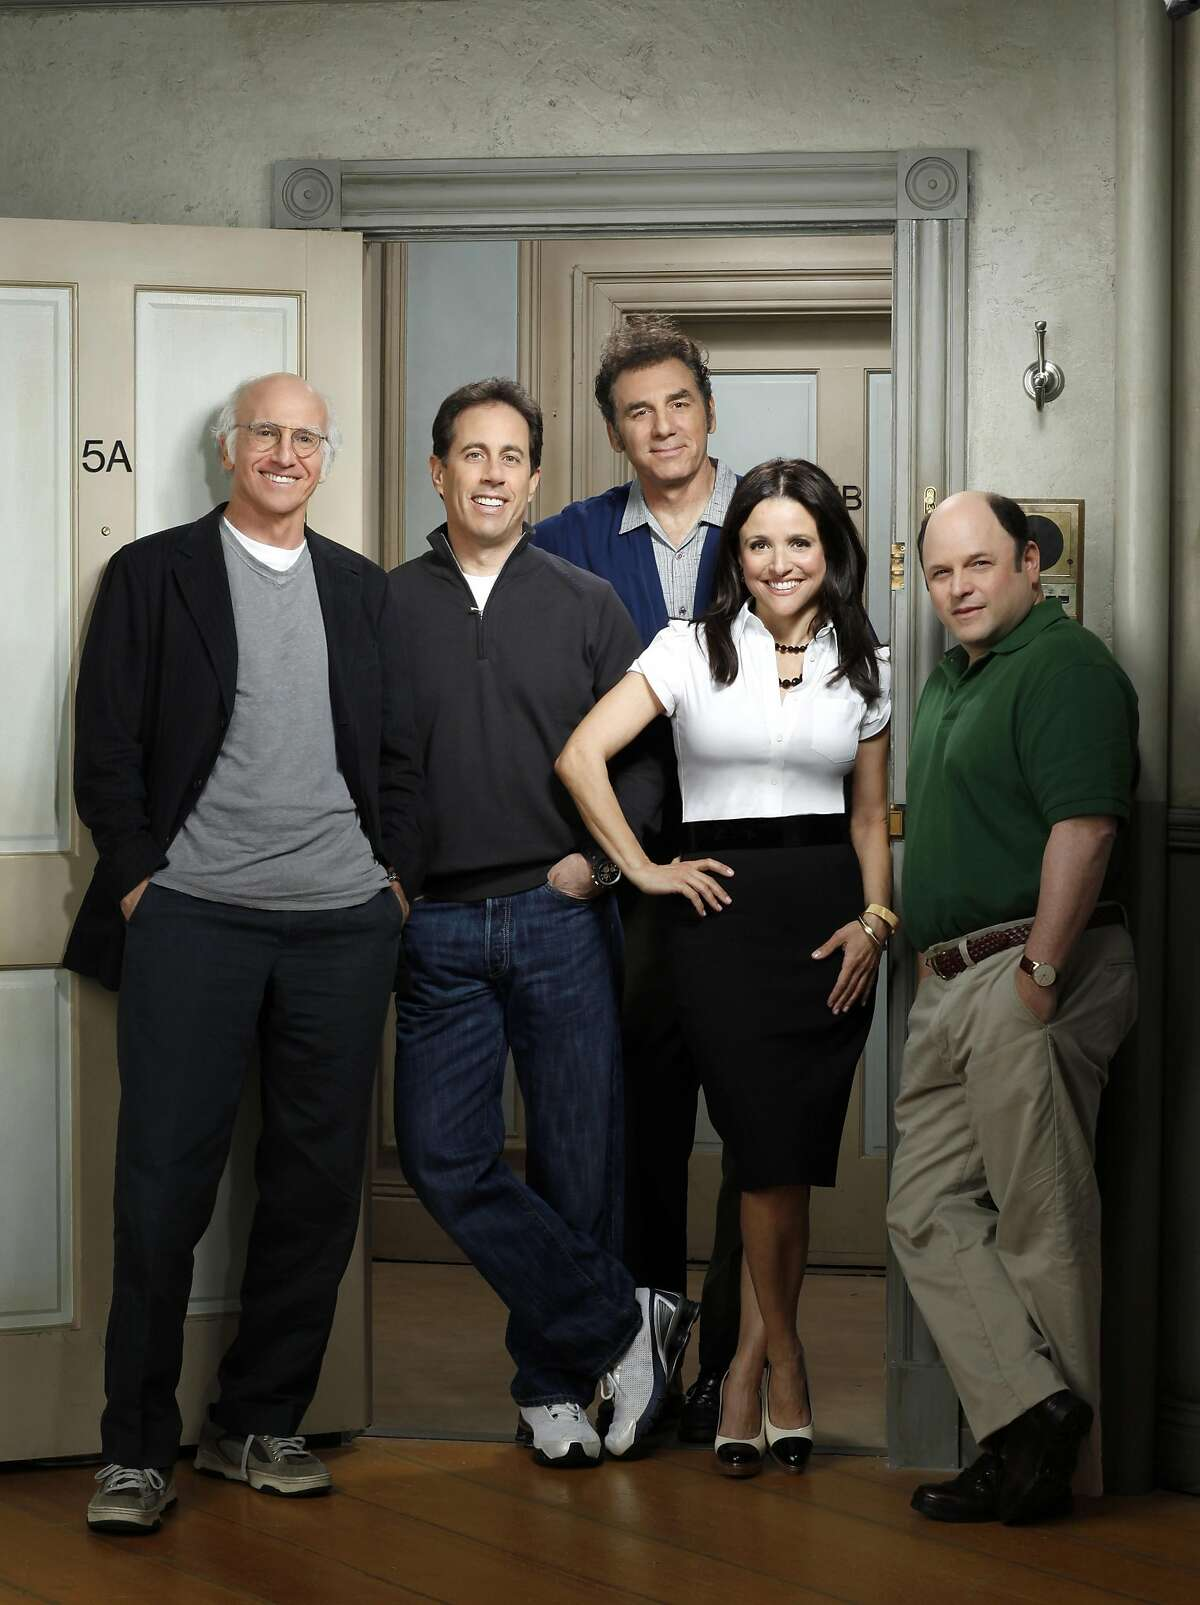 Curb Your Enthusiasm, season 10 Available on HBO January 19 Larry David stars as... Larry David, living the good life out in Los Angeles and stumbling through one faux-pas after another.